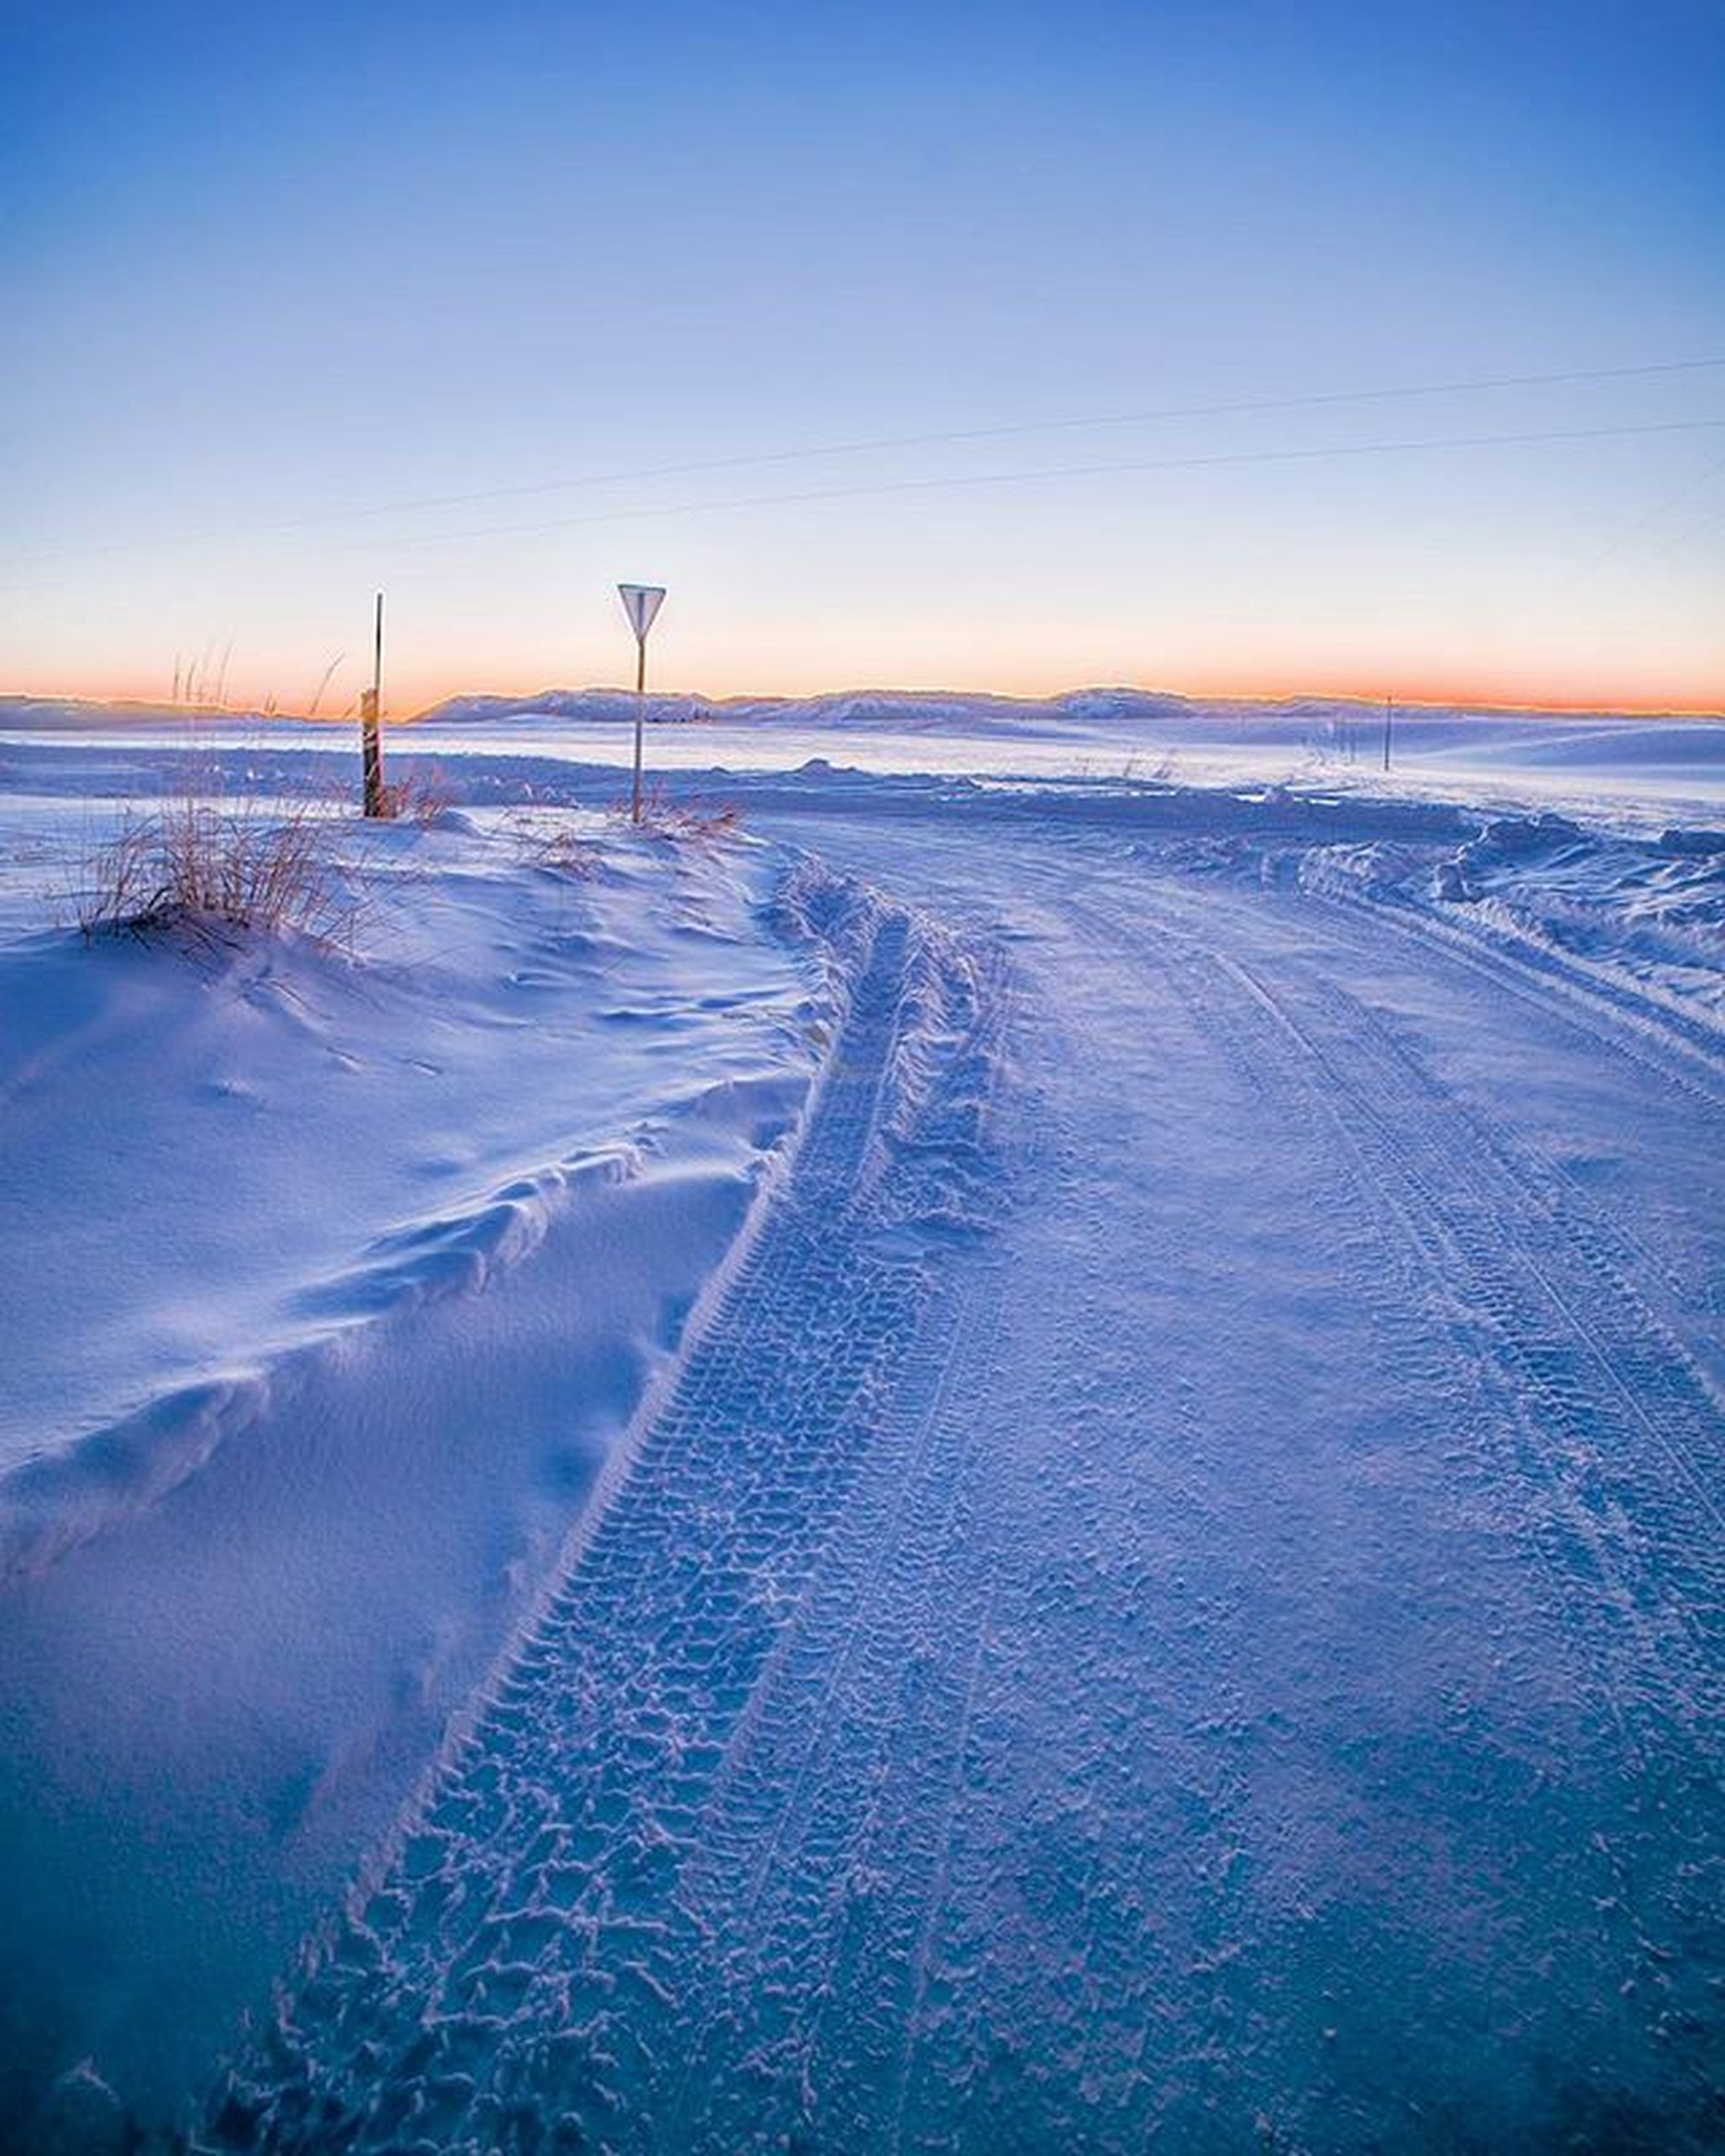 snow, cold temperature, winter, sunset, tranquil scene, tranquility, scenics, season, beauty in nature, nature, sky, clear sky, weather, copy space, covering, frozen, landscape, blue, dusk, idyllic